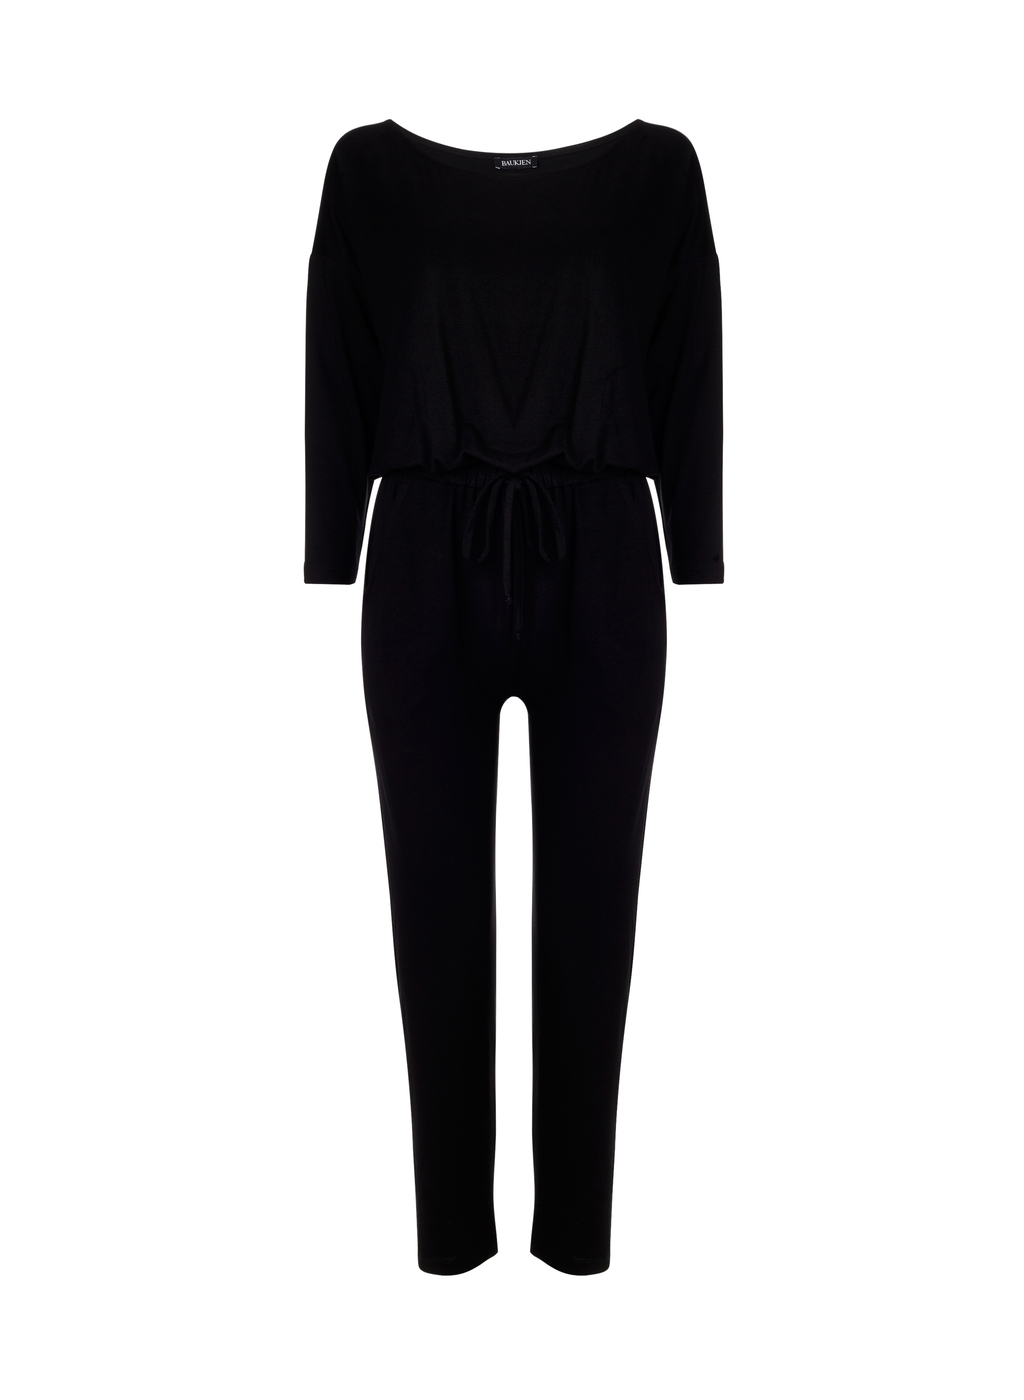 Womenswear Crofton Jumpsuit - length: standard; neckline: round neck; fit: fitted at waist; pattern: plain; predominant colour: black; fibres: viscose/rayon - stretch; sleeve length: 3/4 length; sleeve style: standard; style: jumpsuit; pattern type: fabric; texture group: jersey - stretchy/drapey; occasions: creative work; season: a/w 2015; wardrobe: highlight